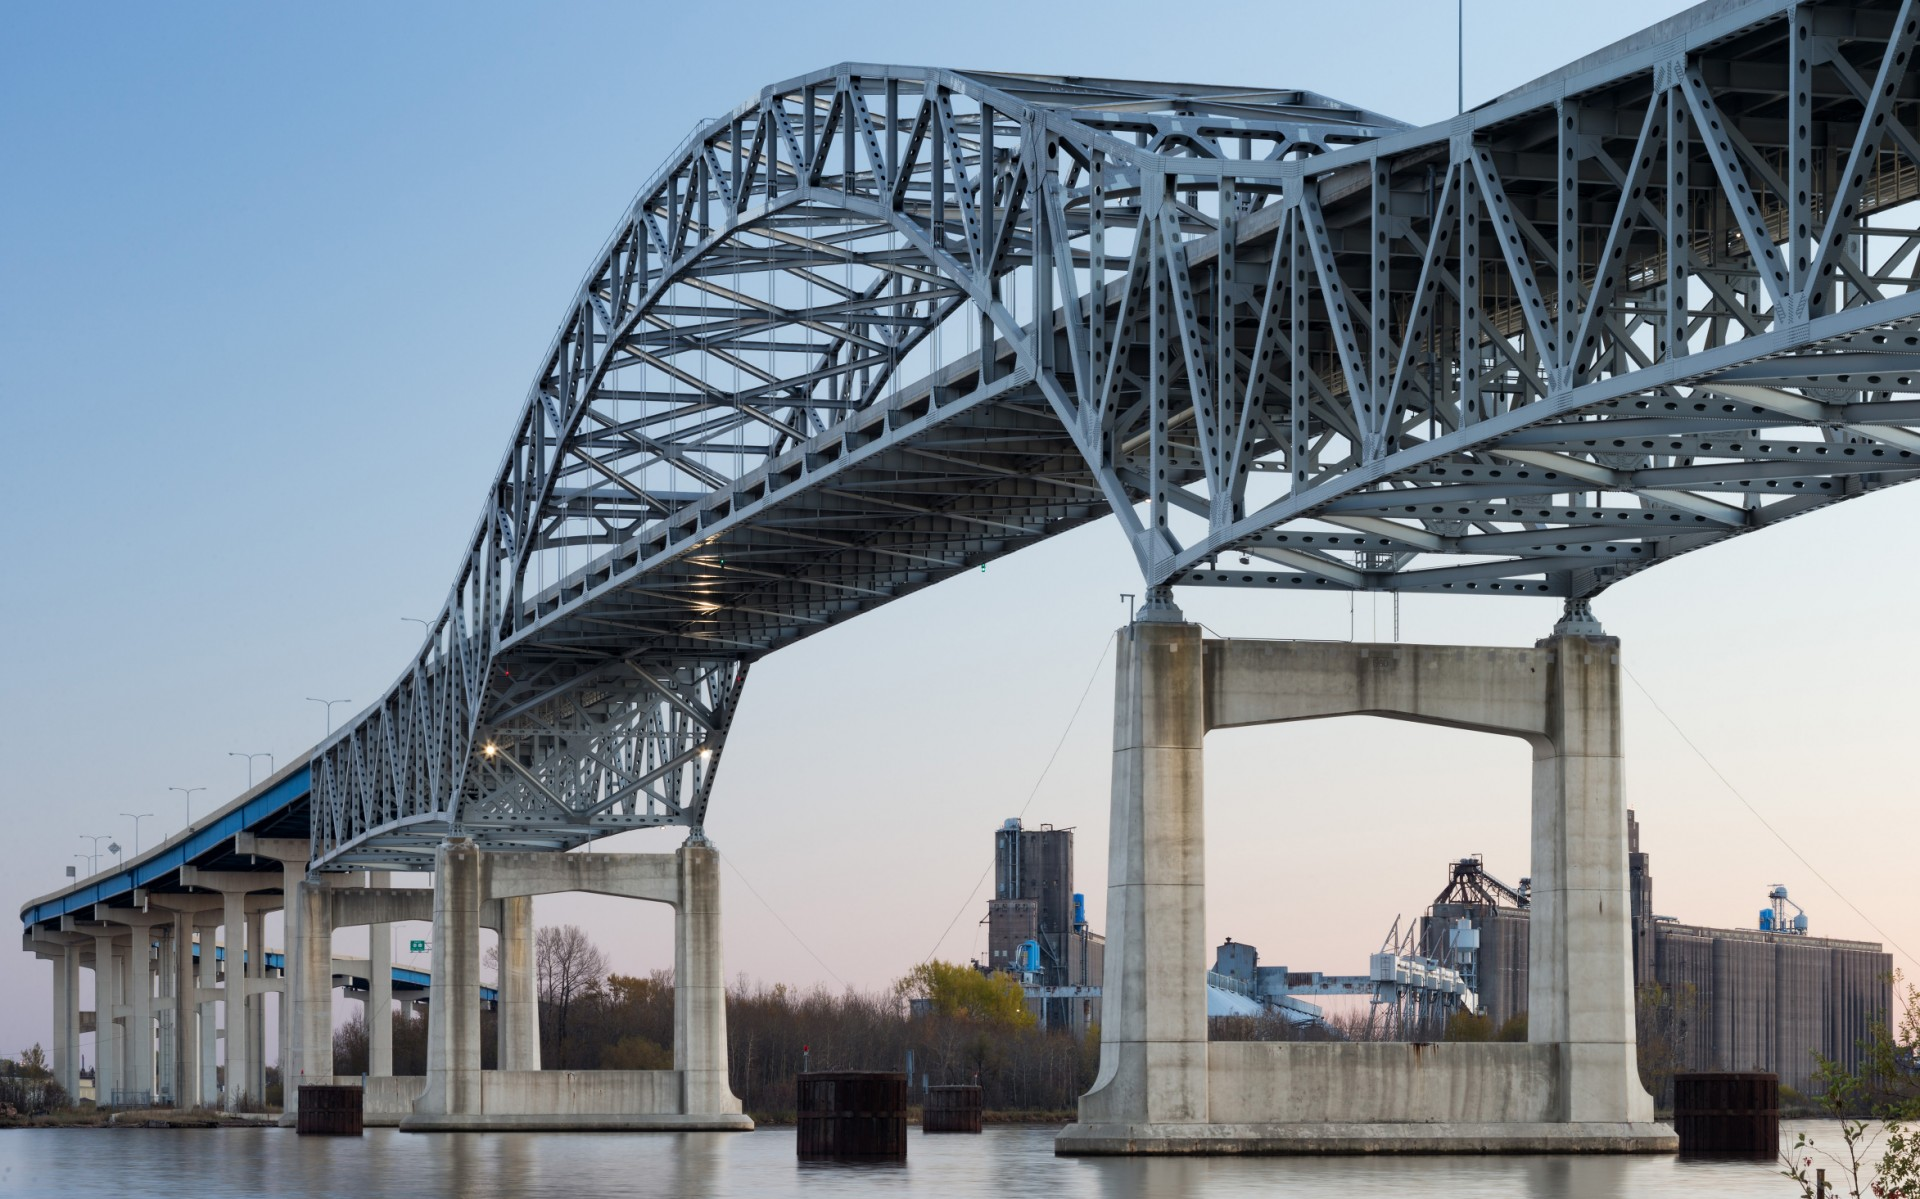 Lumentalk simplified the conversion to LED lighting and digital control, reducing the total amount of necessary conduit, cable and labor on the massive bridge.